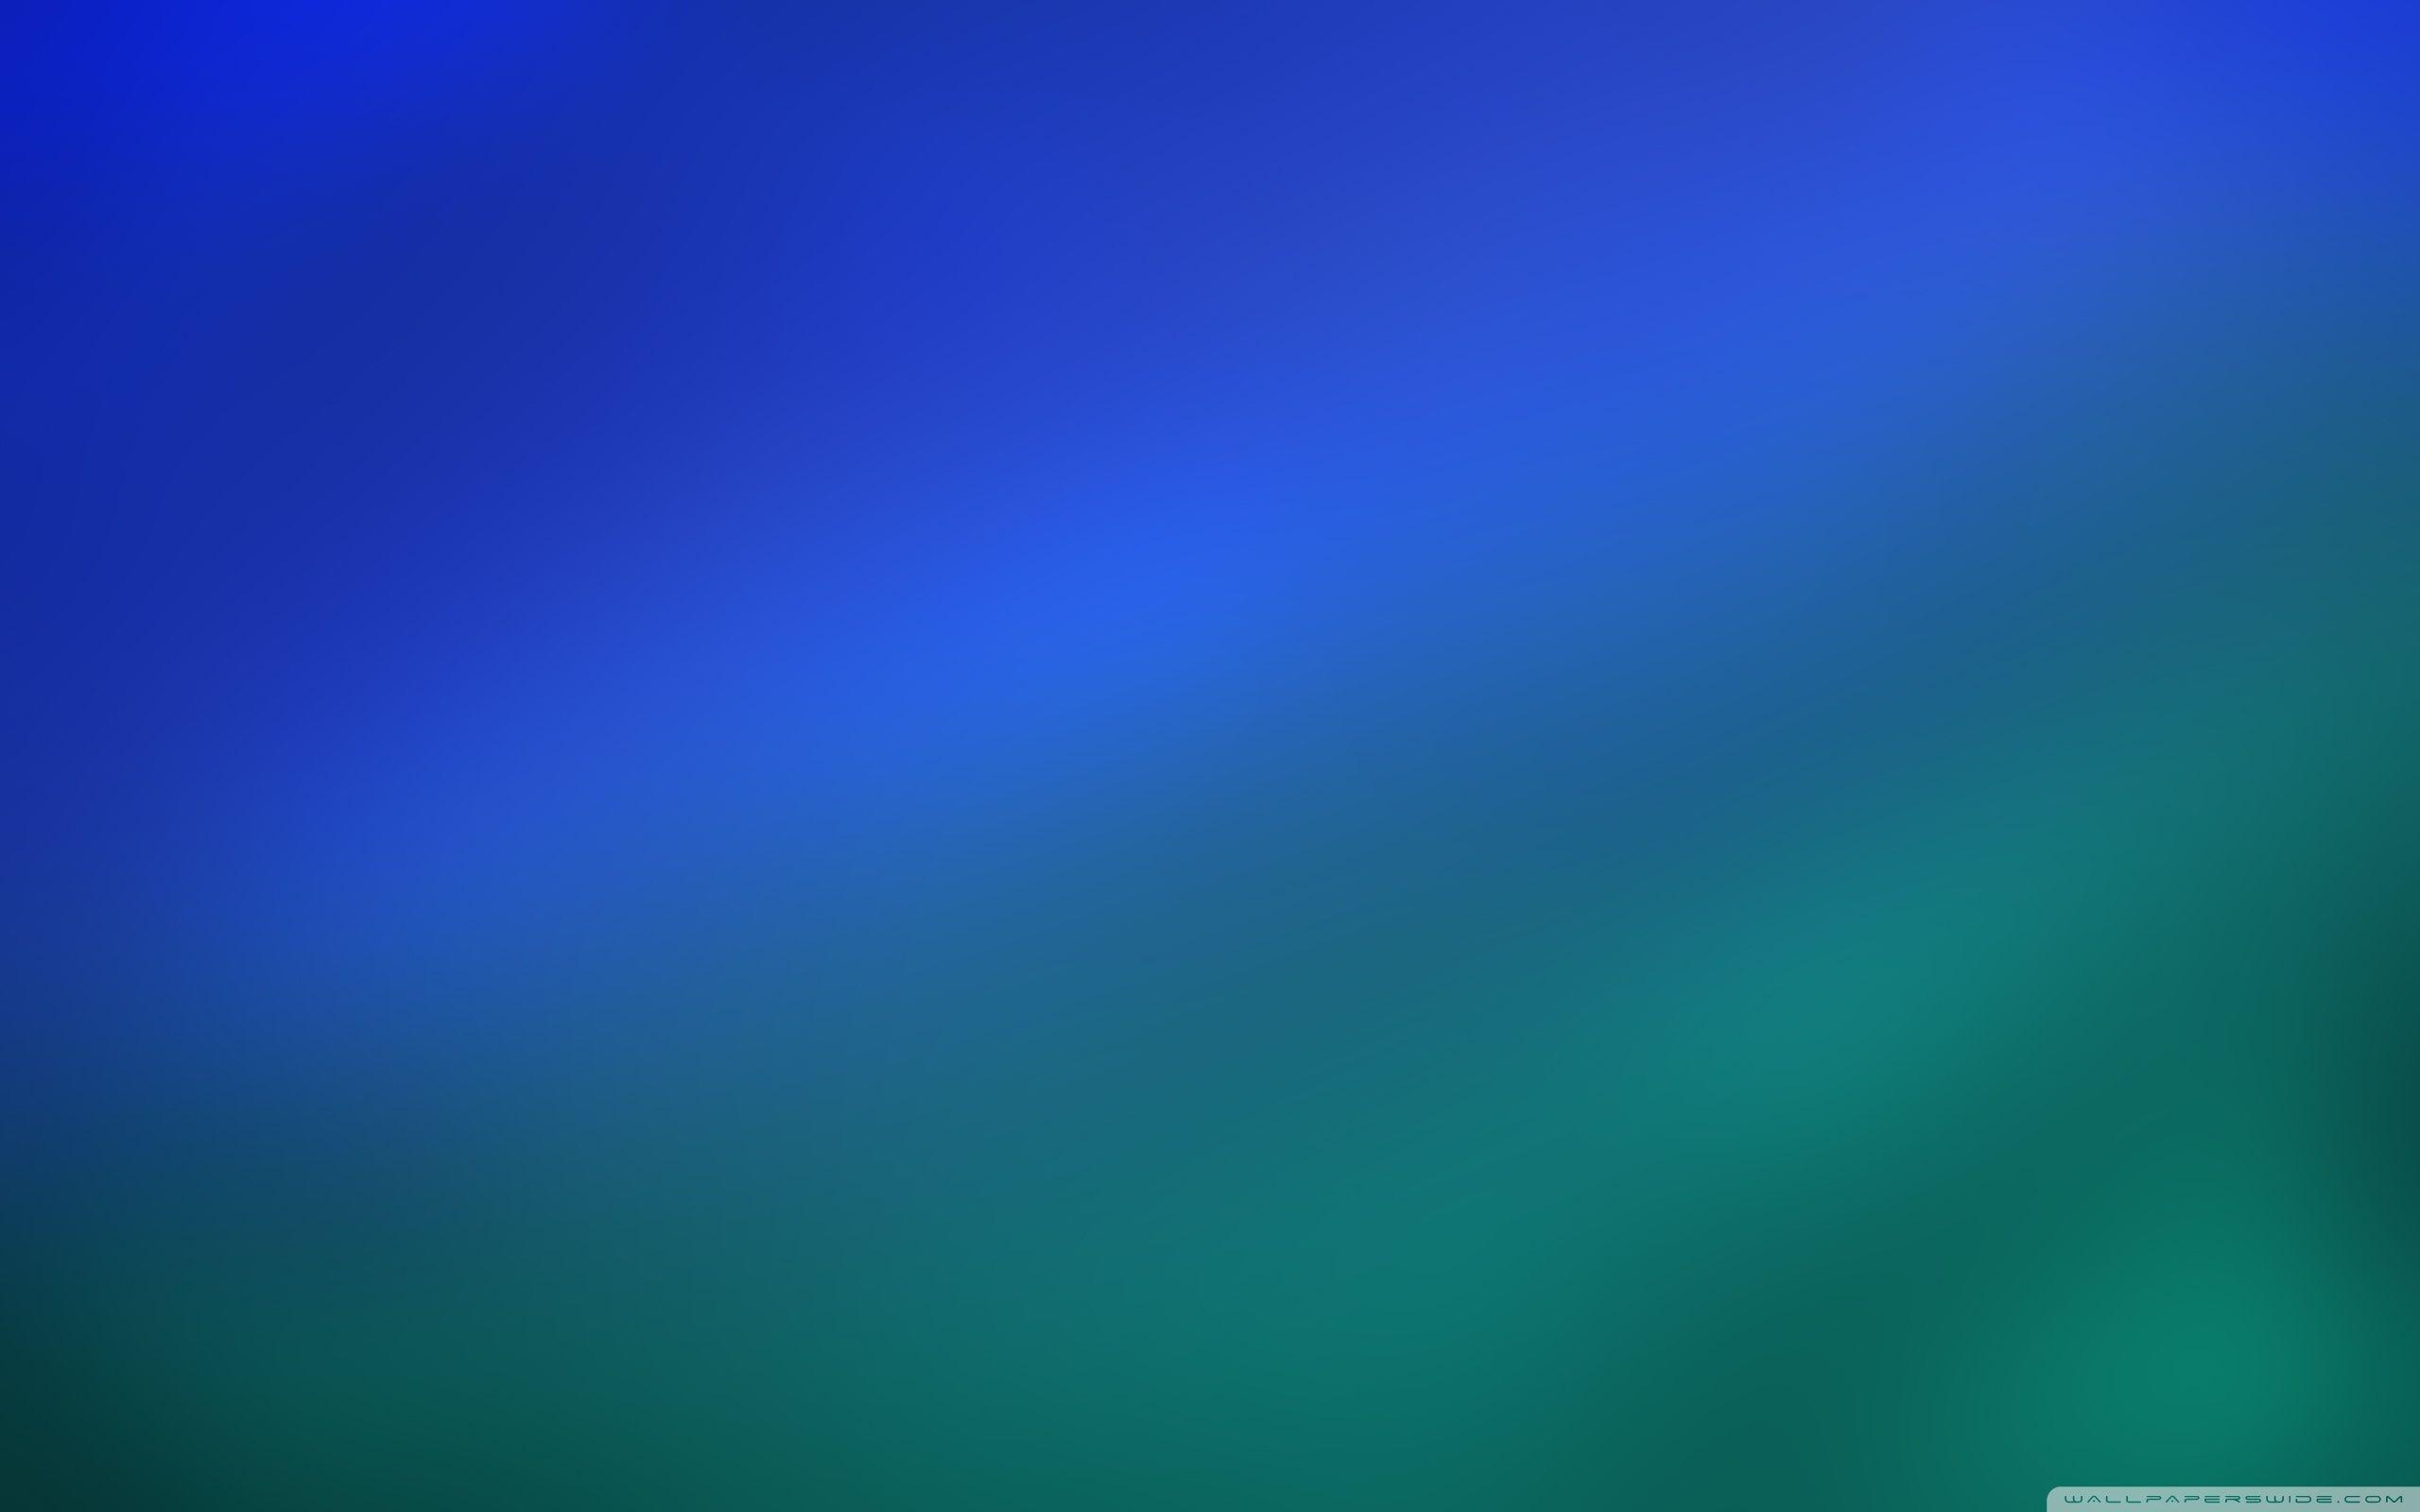 Green And Blue Wallpapers - Wallpaper Cave